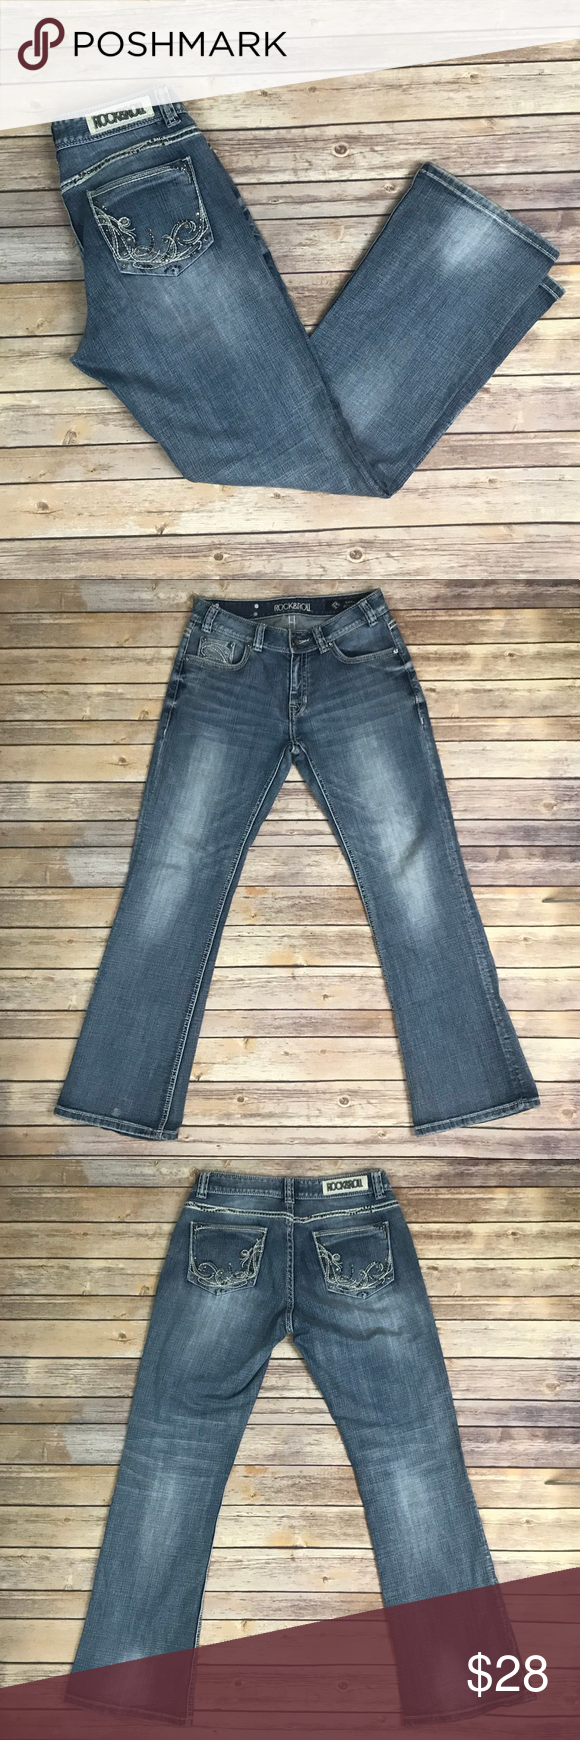 ROCK&ROLL Cowgirl Jeans 30x32 Mid Rise Reposhing Rock & Roll Cowgirl Jeans in Great Condition. Legs are not fitted and bit baggier than I like, so I'm reposhing. Jeans have no known stains or flaws and are mid rise. Size 30x32.   Waist- 30 Inseam- 32 Rock & Roll Cowgirl Jeans